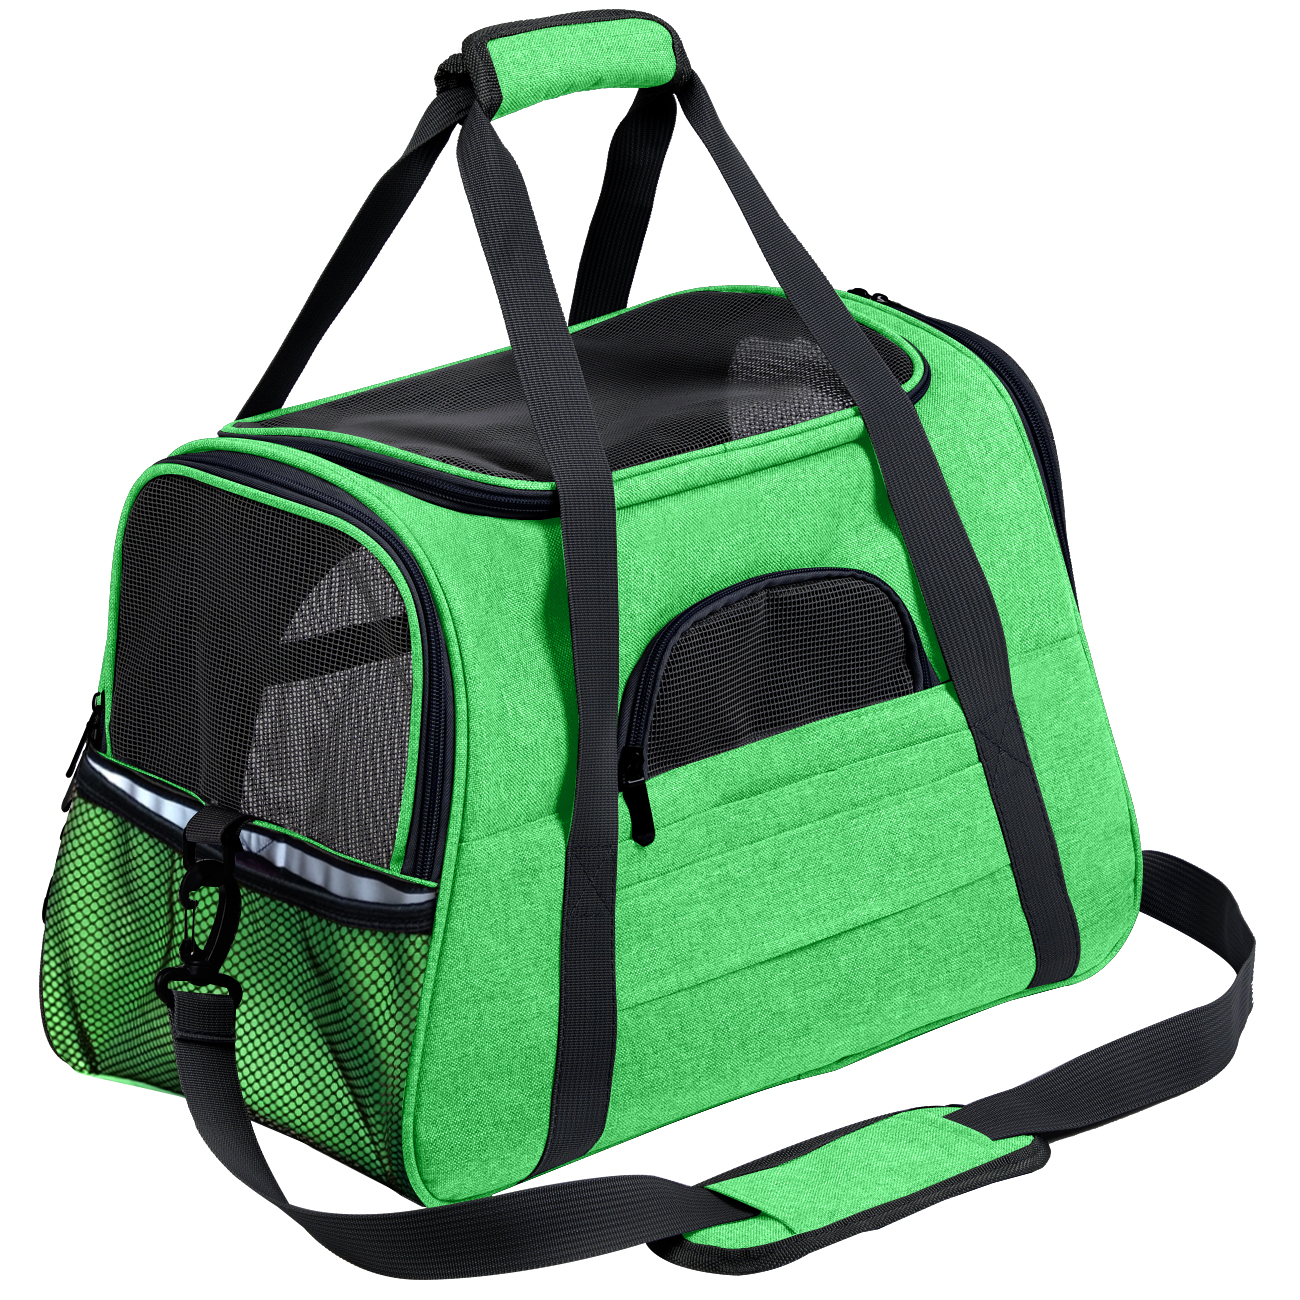 Portable Small Dog Backpack Carrier 9